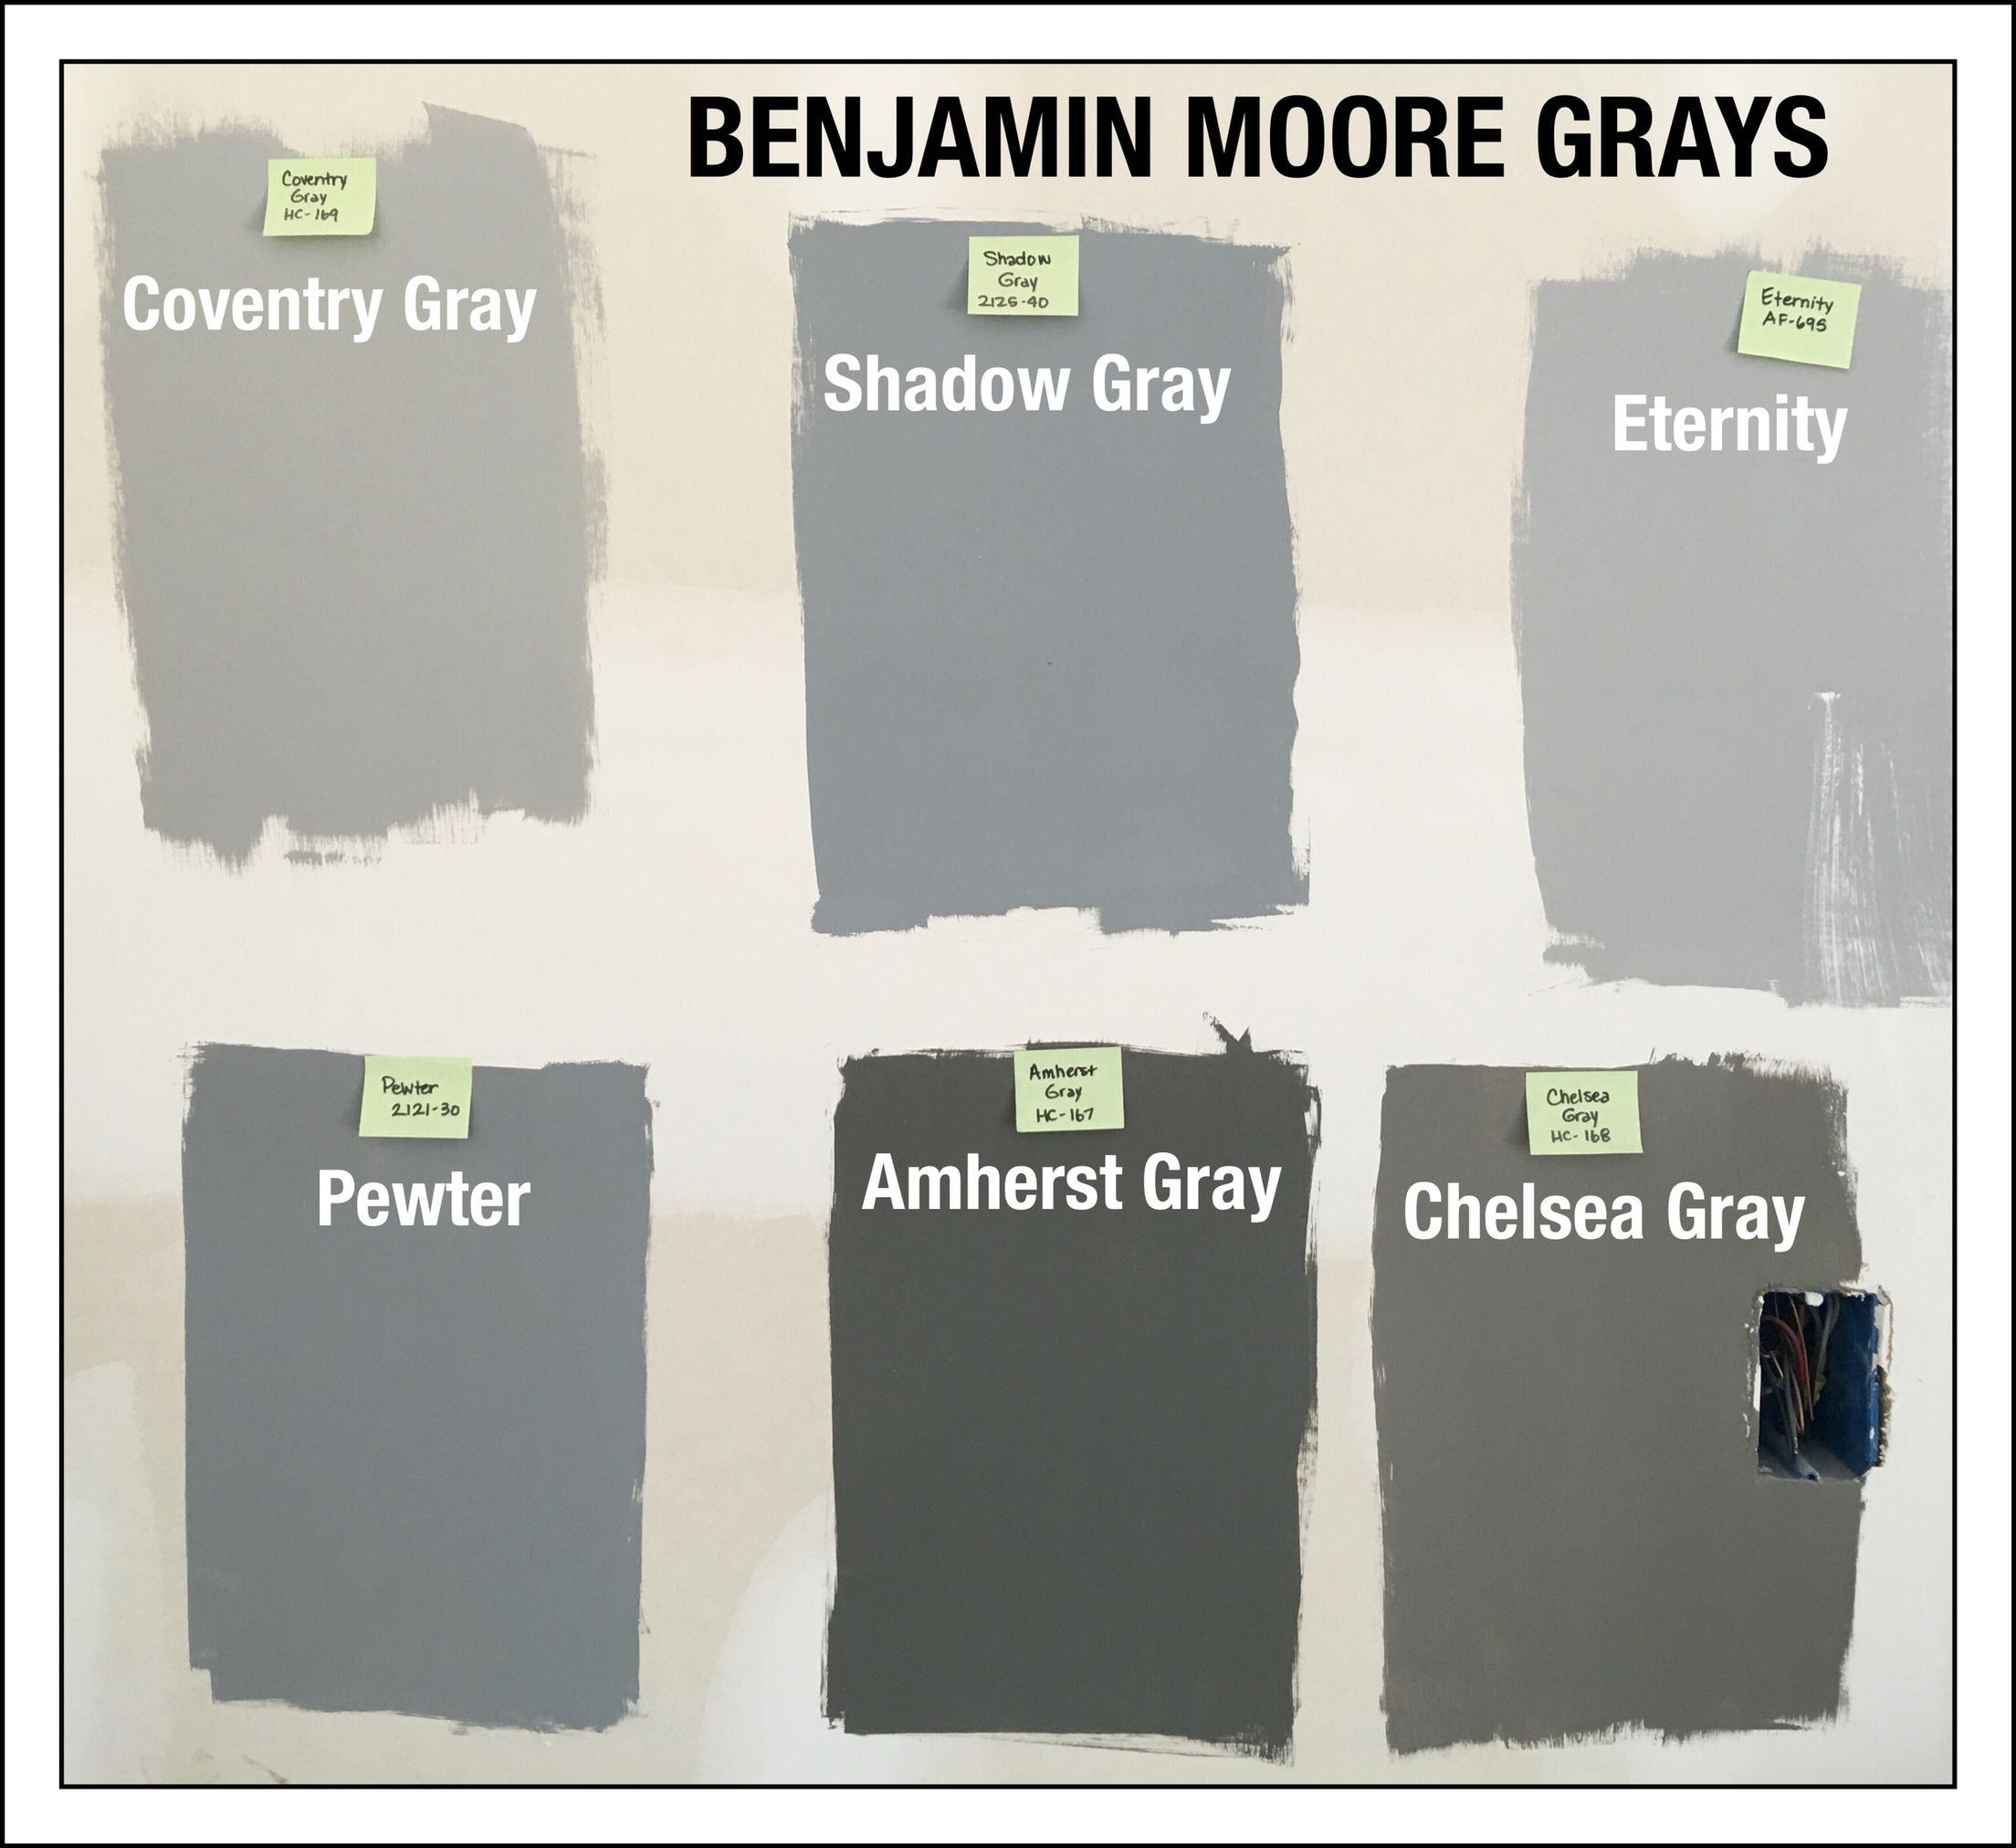 Benjamin Moore Gray Paint Swatches Coventry Gray Hc 169